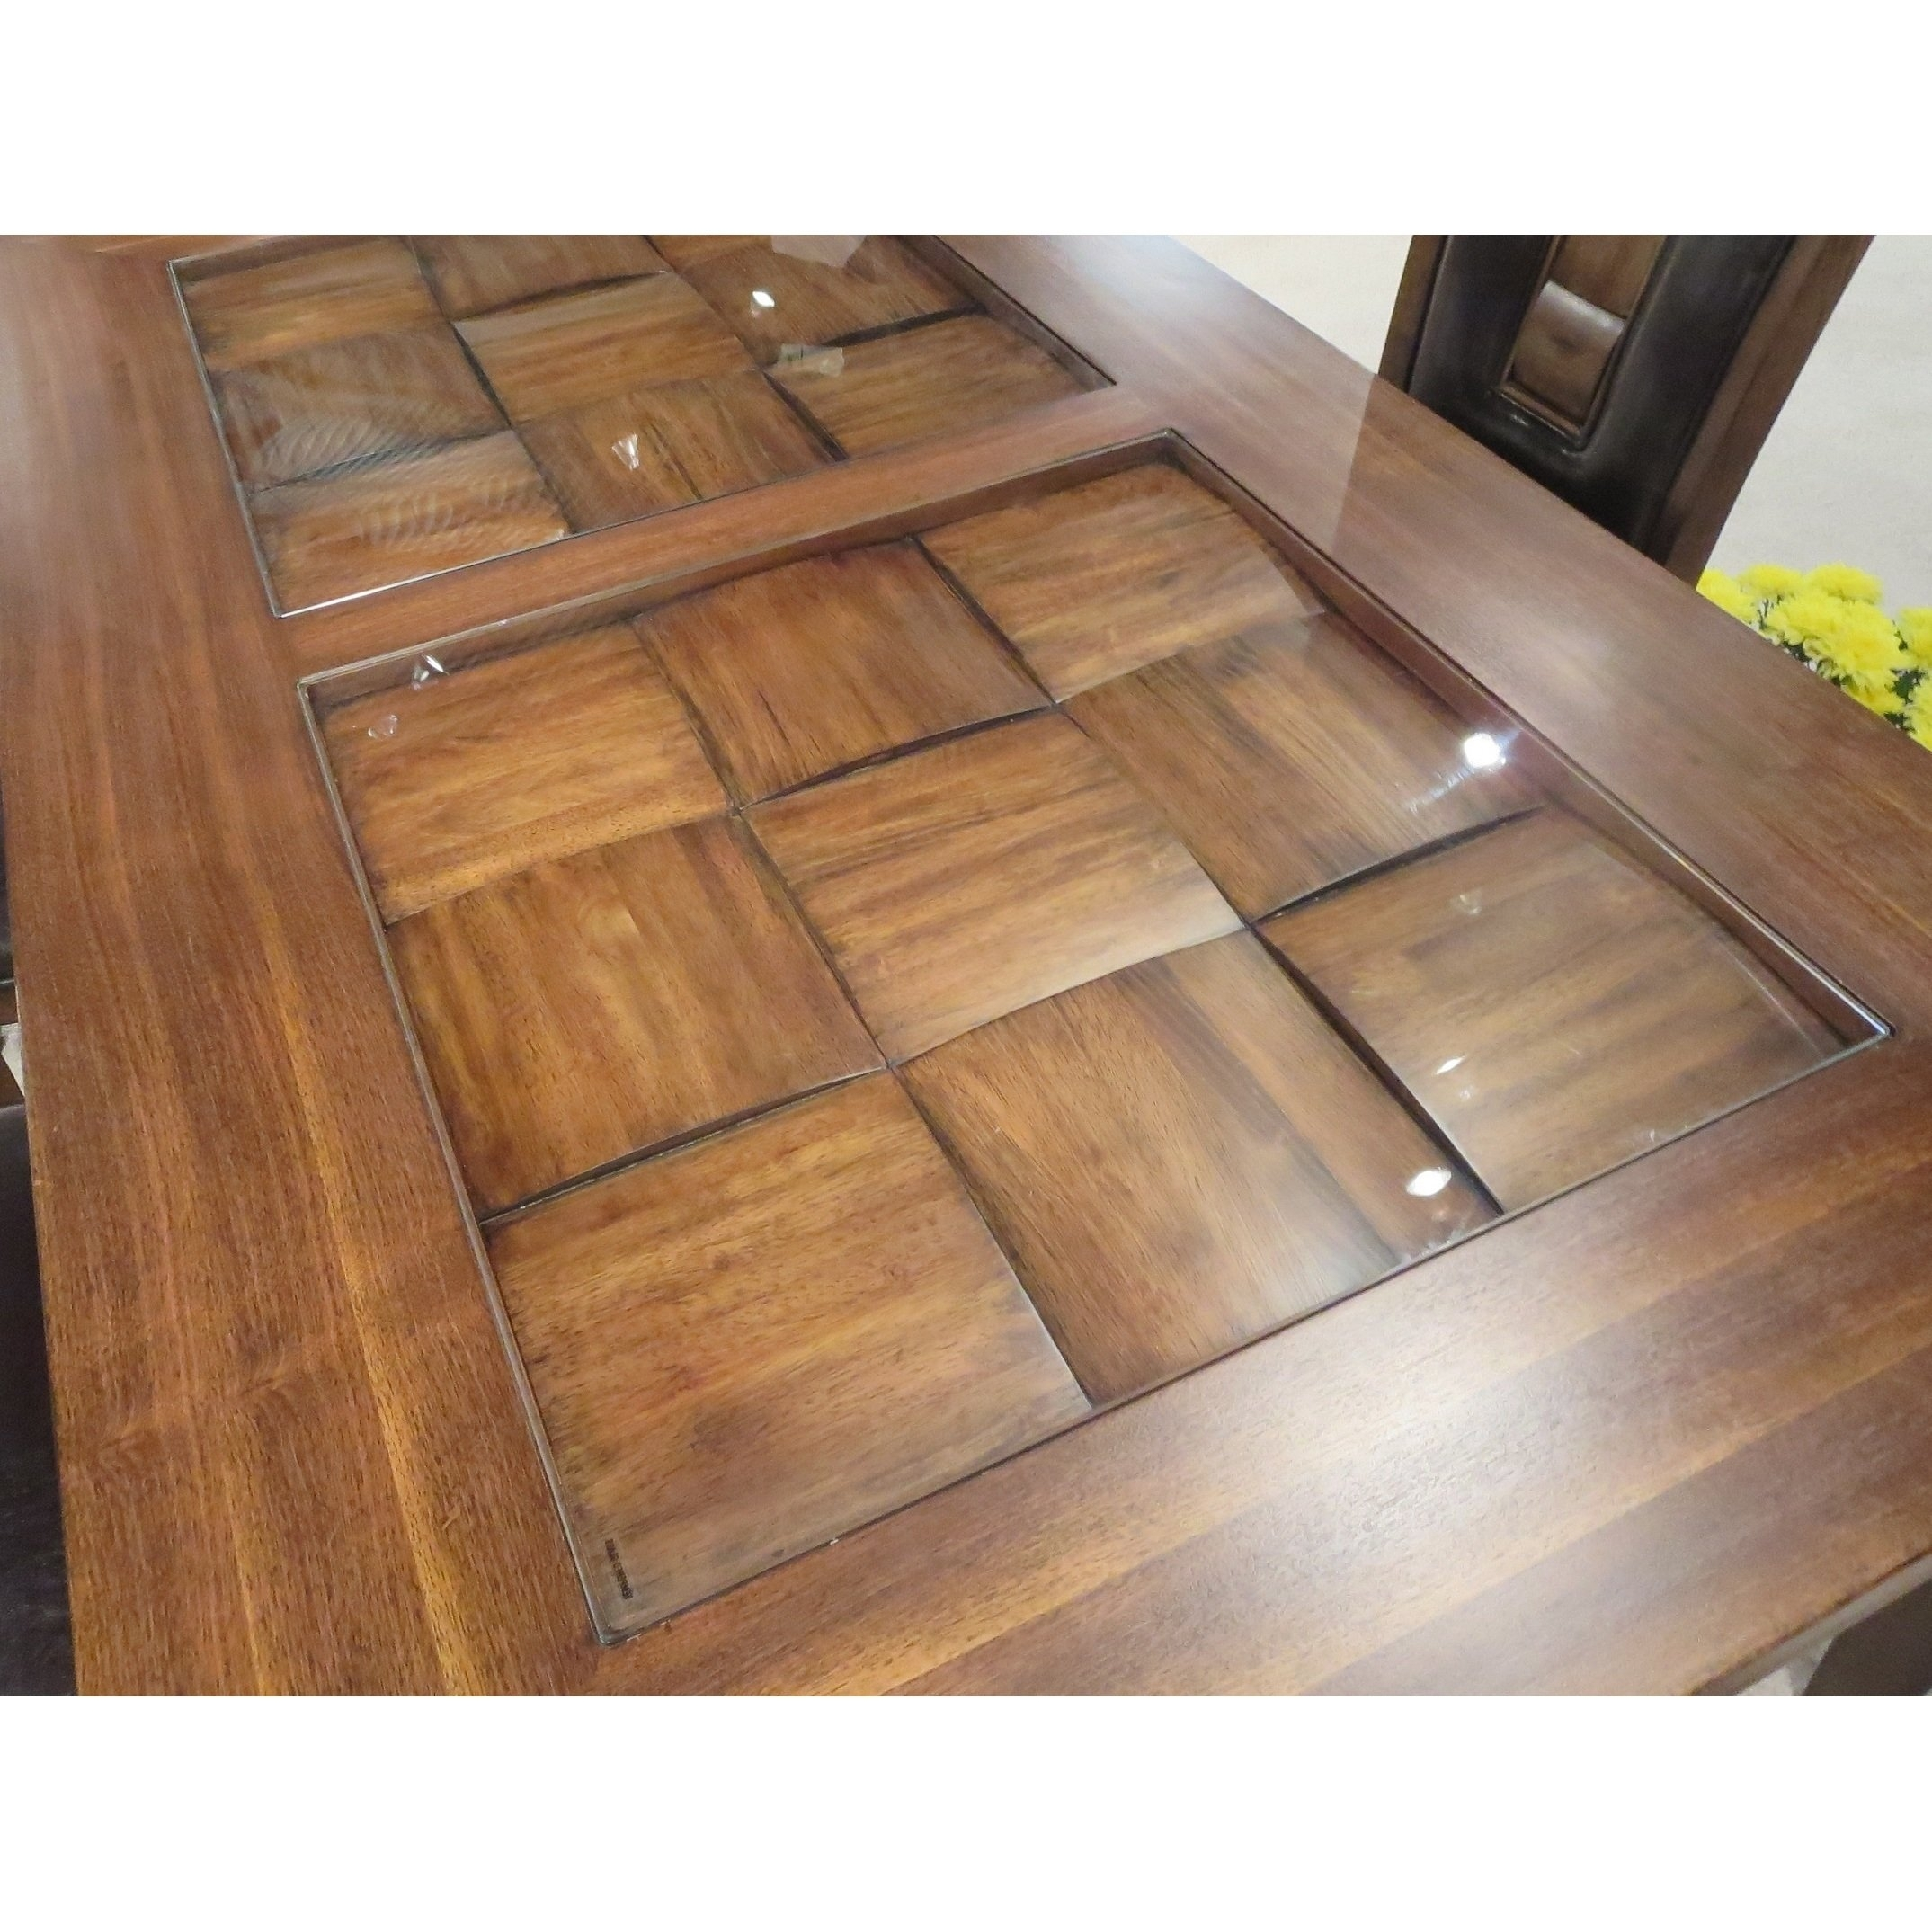 Shop Calais 7 Piece Parquet Finish Solid Wood Dining Table With 6 Inside Most Current Parquet 6 Piece Dining Sets (Image 15 of 20)